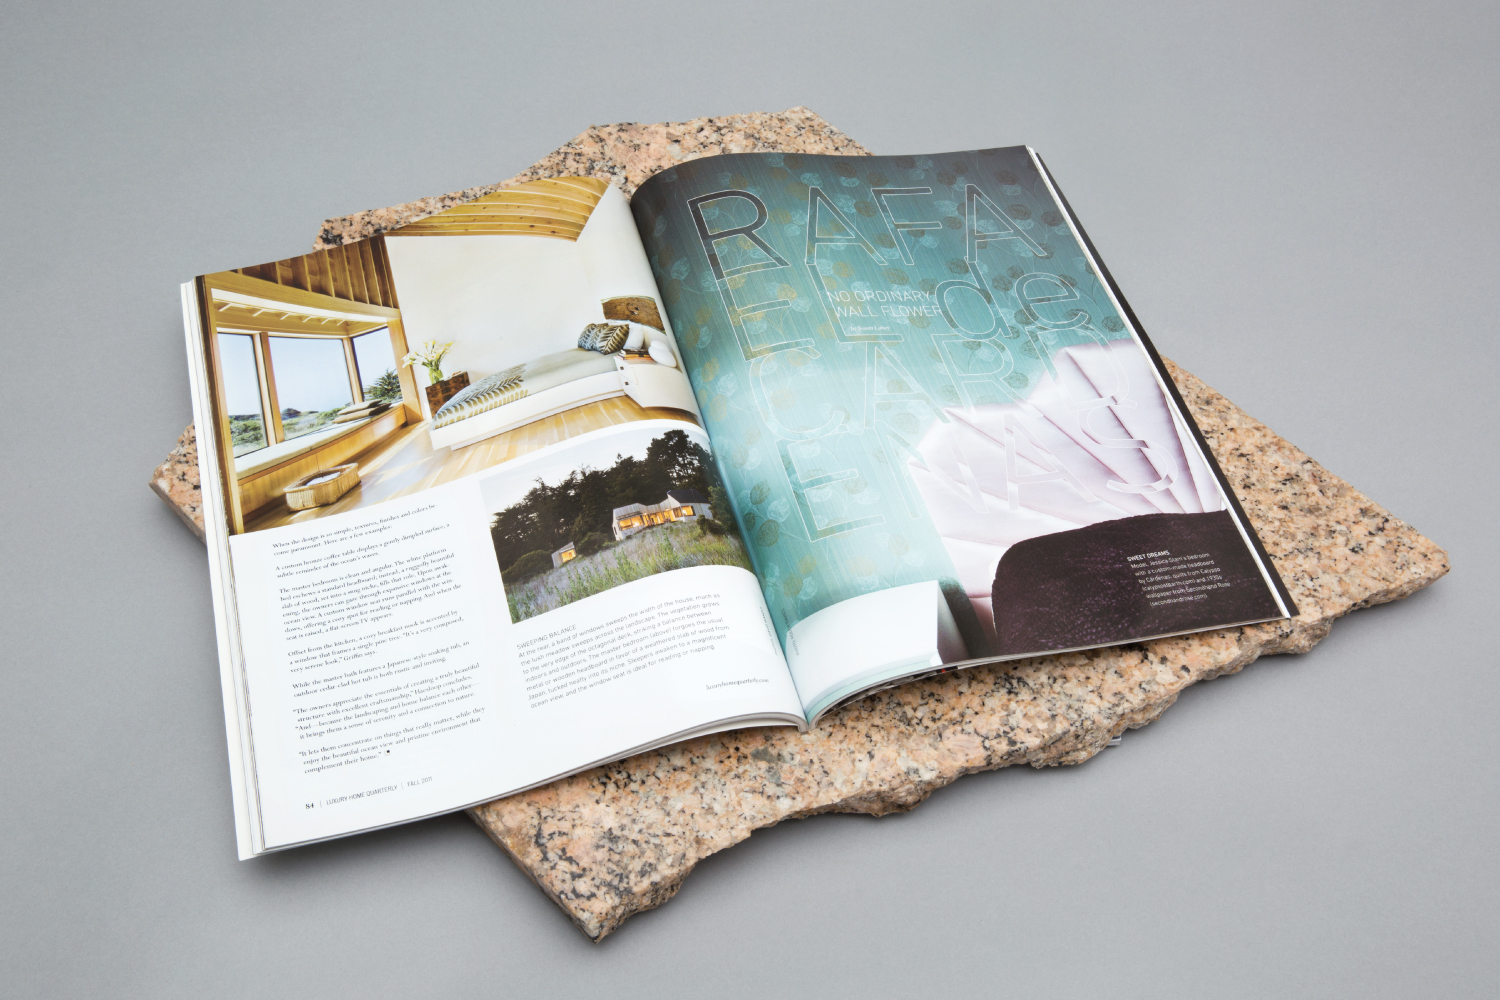 Luxury Home Magazine art direction and design.